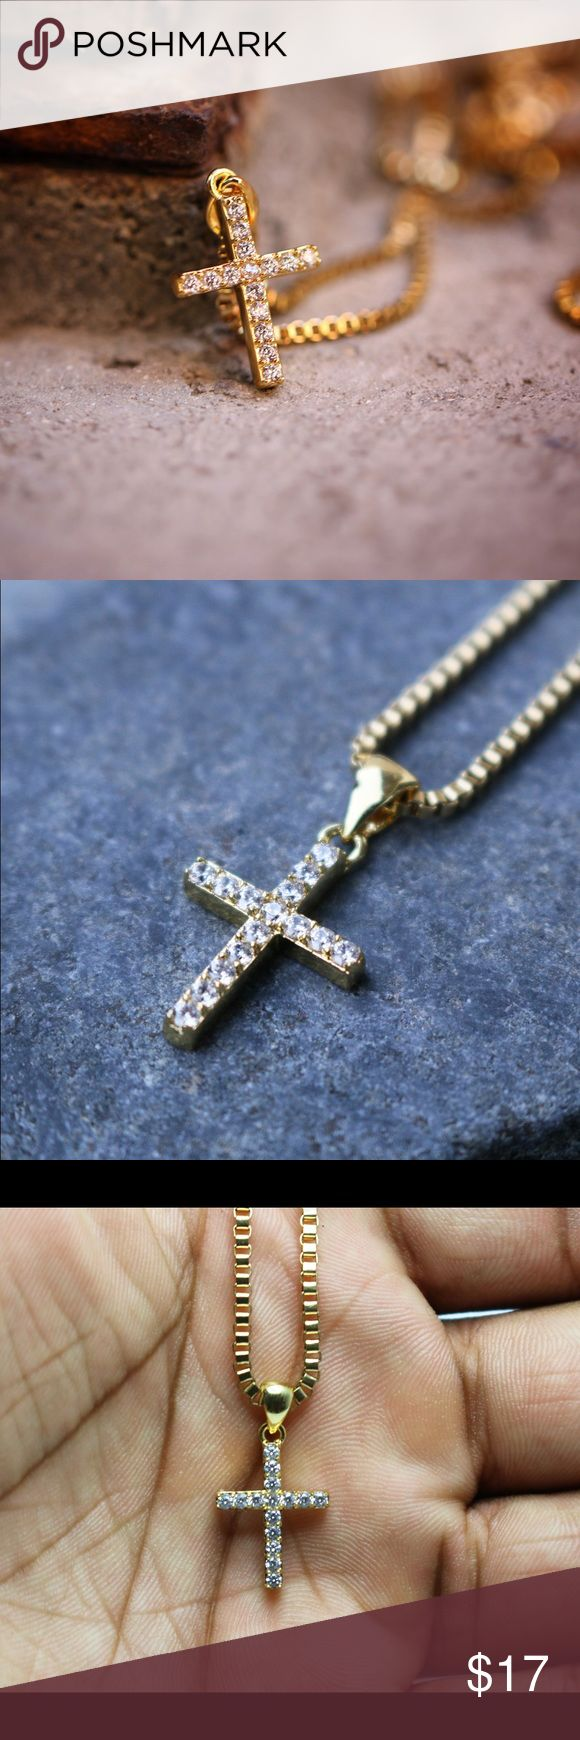 Mini Micro 14K Gold Plated Cross Chain Mini Micro 14K Gold Plated Cross Chain  This cross piece and chain is made of stainless steel with a 14K gold plating on top.Comes with a 20,22,24 or 26 inch 2mm stainless steel 14K Gold Plated box chain.The length of this piece is 10mm (Mini Micro Size). Ts Verniel Jewelry Necklaces